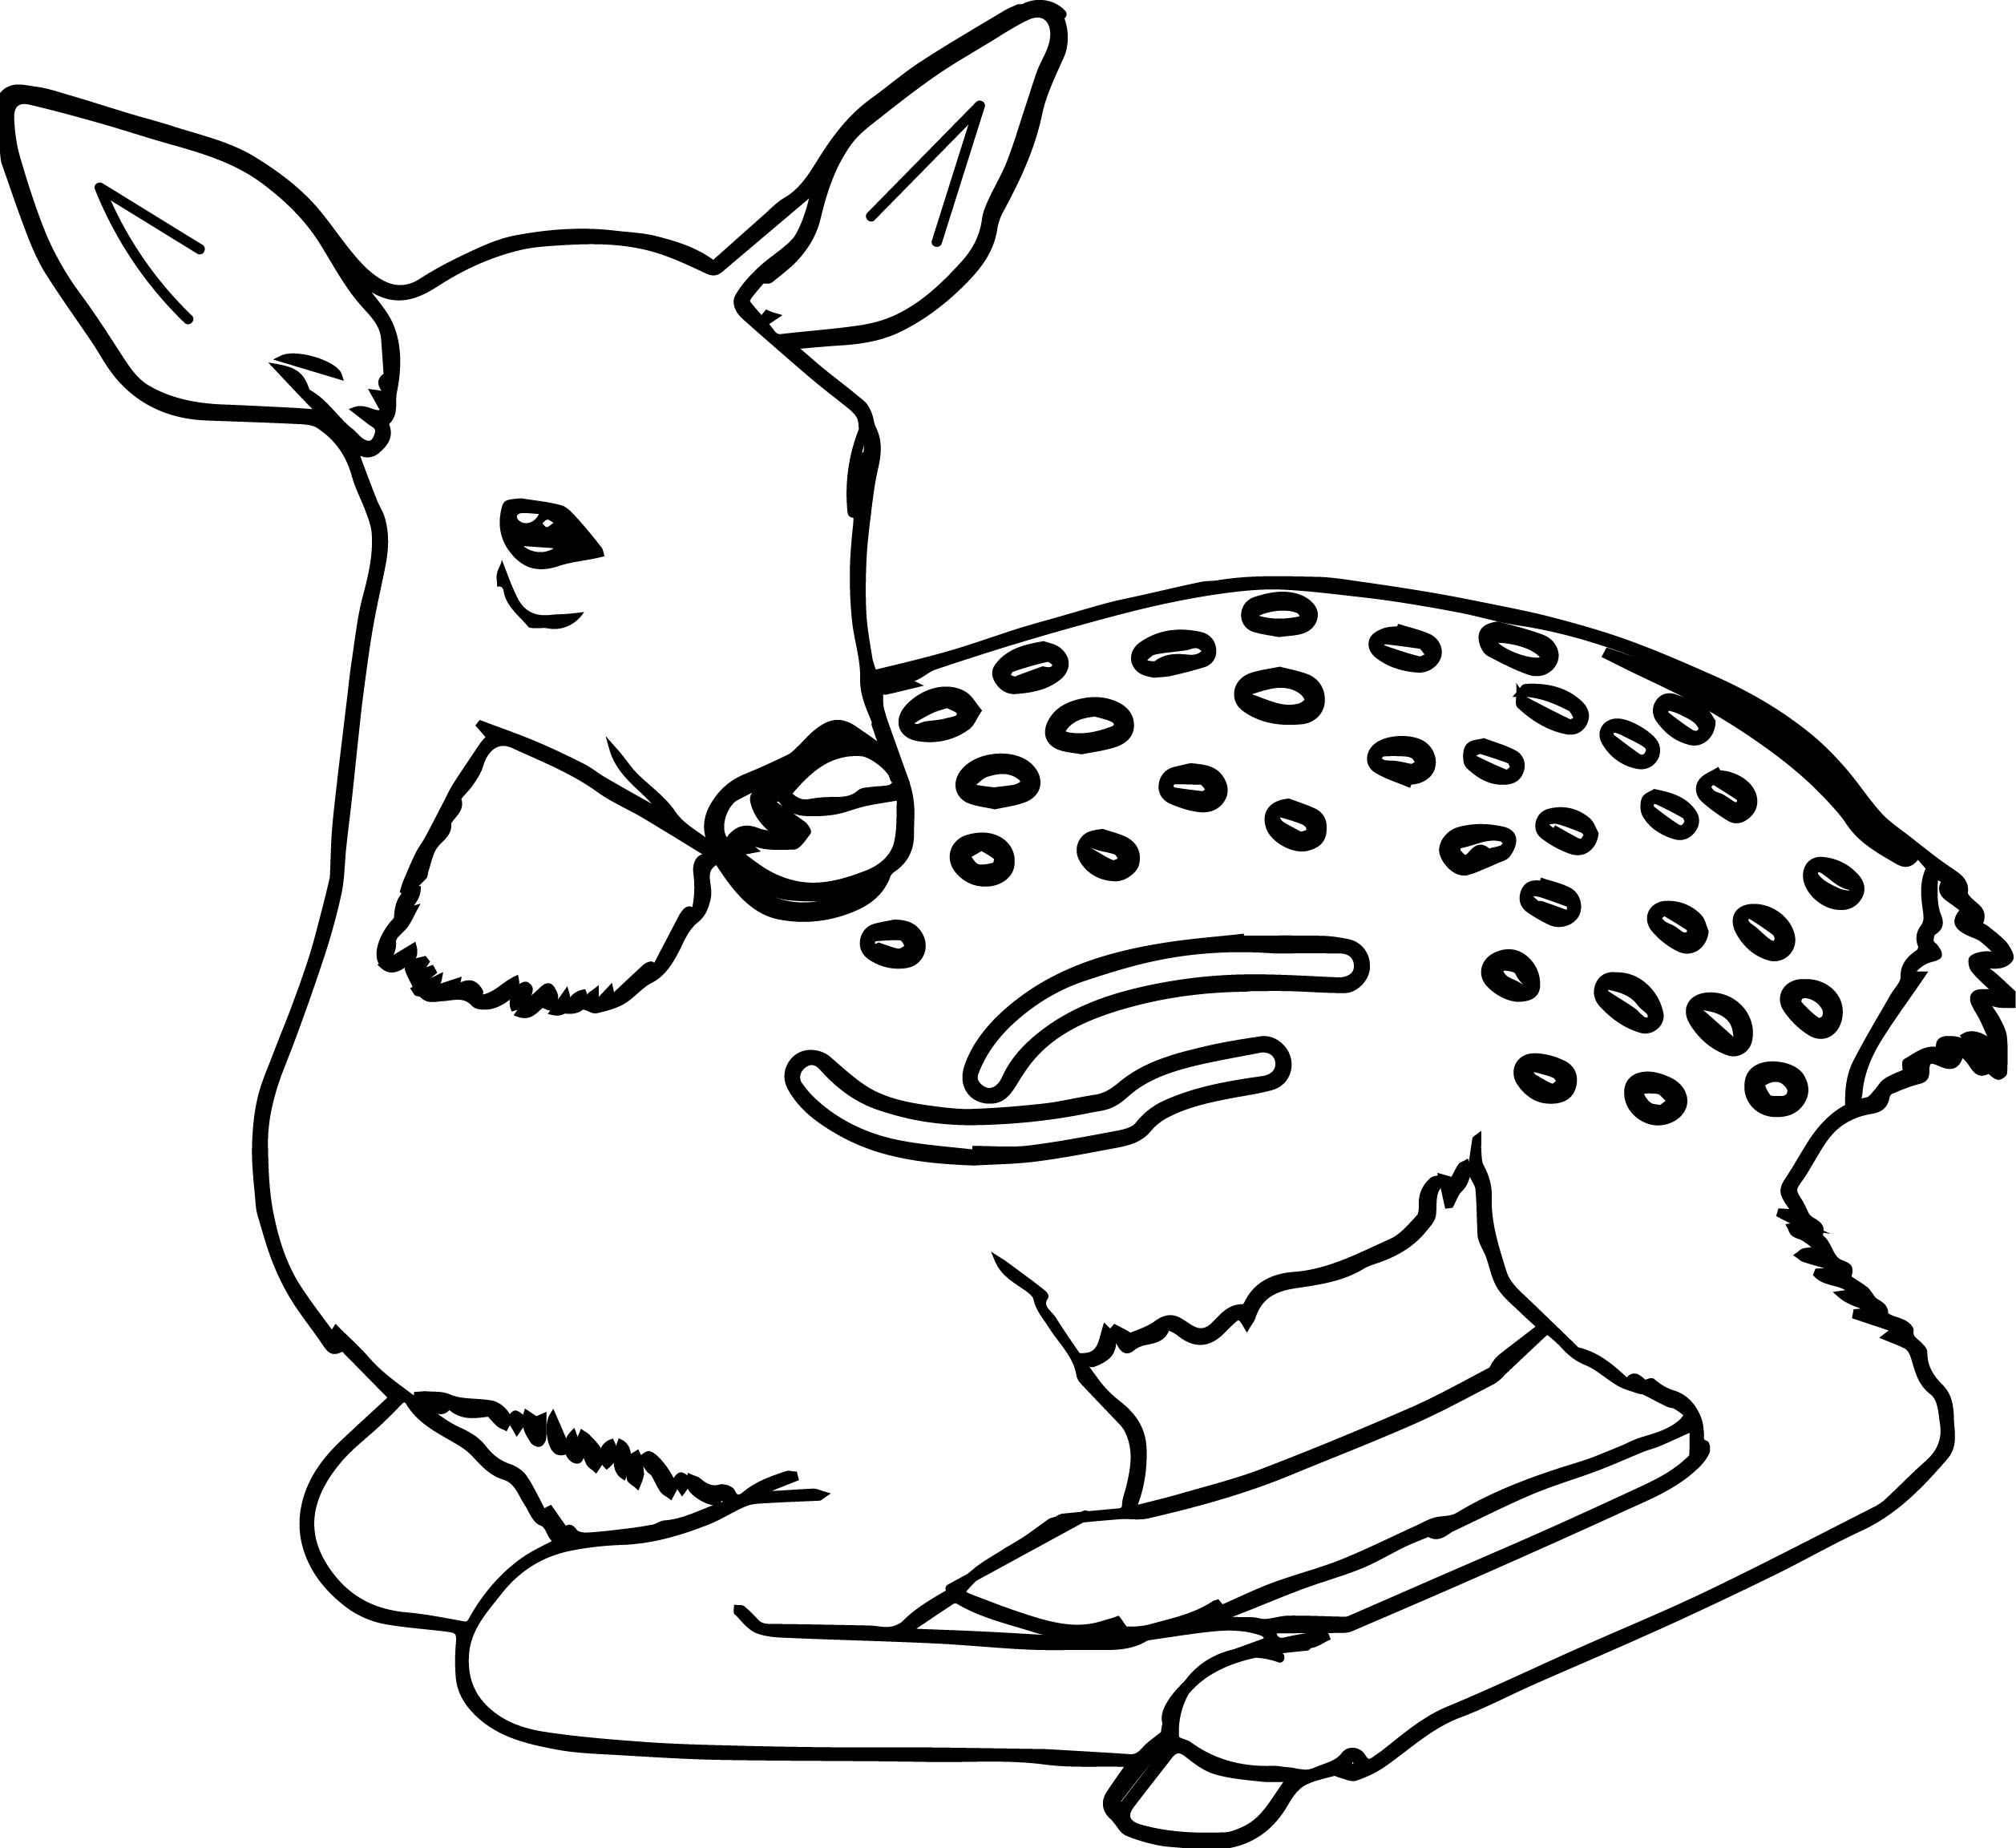 Staying Antelope Animal Coloring Page